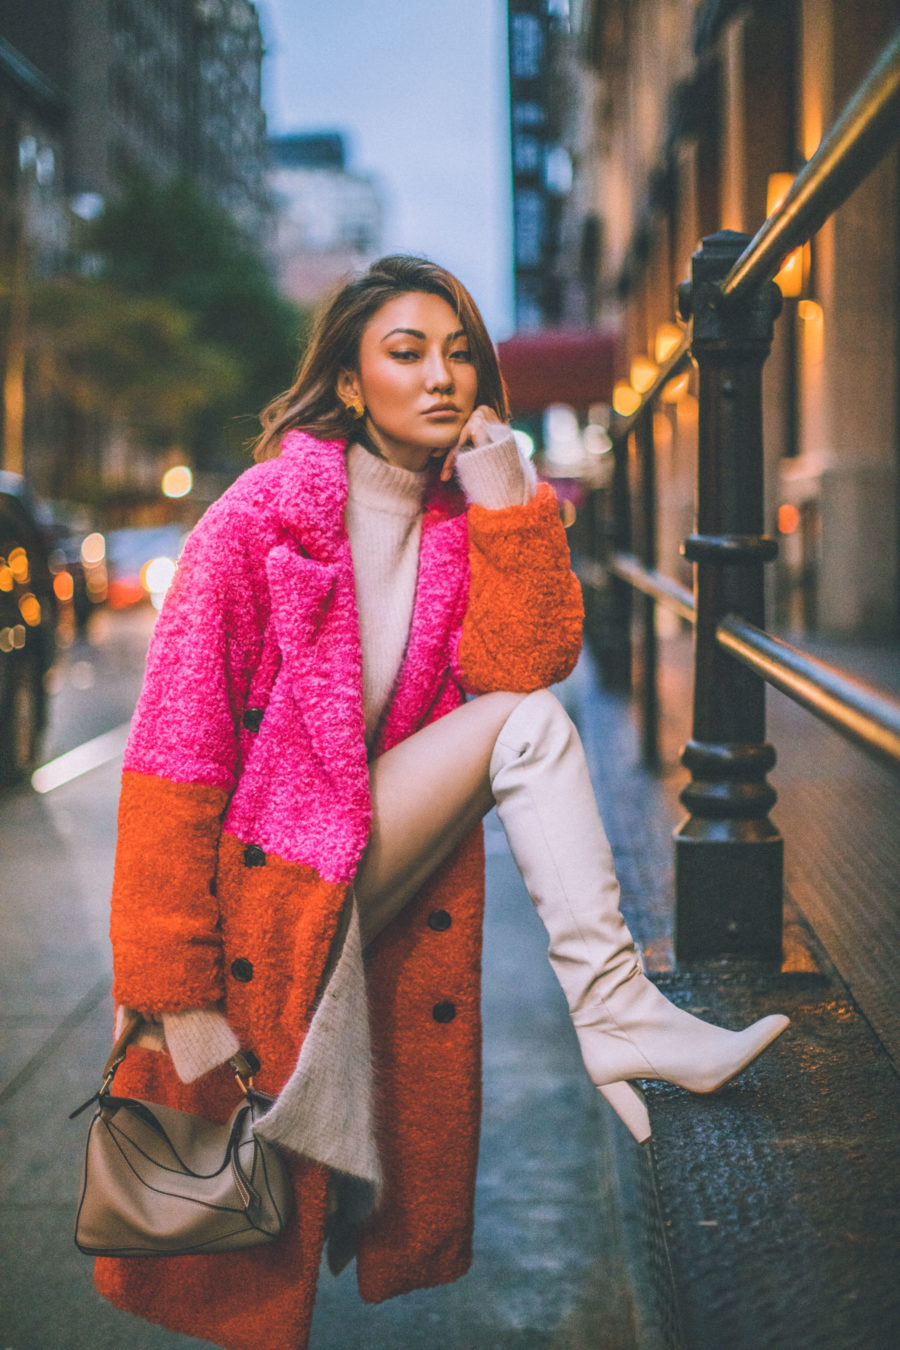 fashion blogger jessica wang shares holiday outfit ideas wearing matching knit set and blank nyc color block coat // Notjessfashion.com